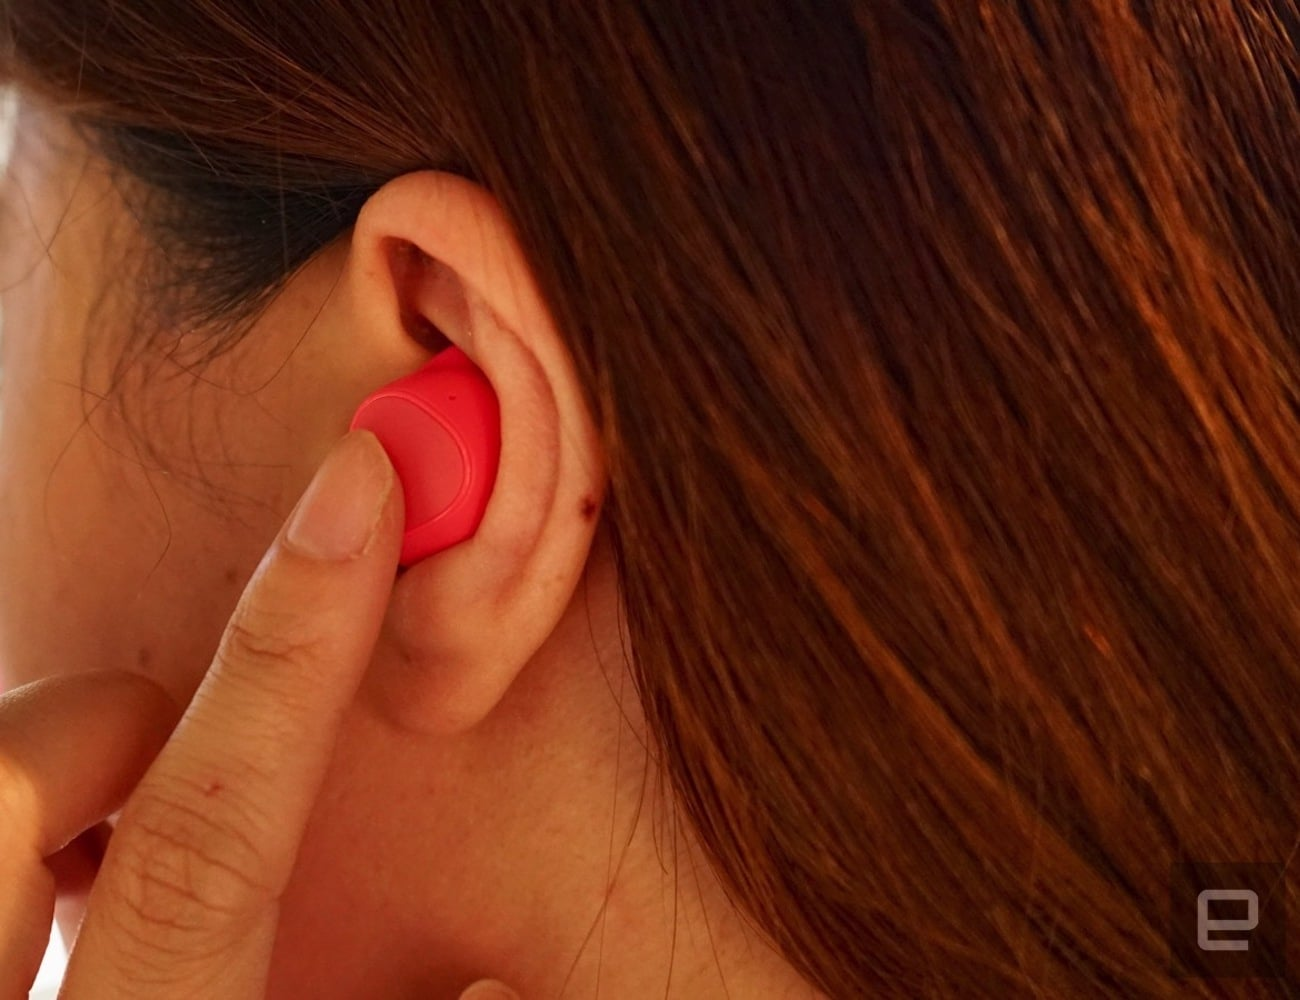 Refined Samsung Gear IconX Earbuds